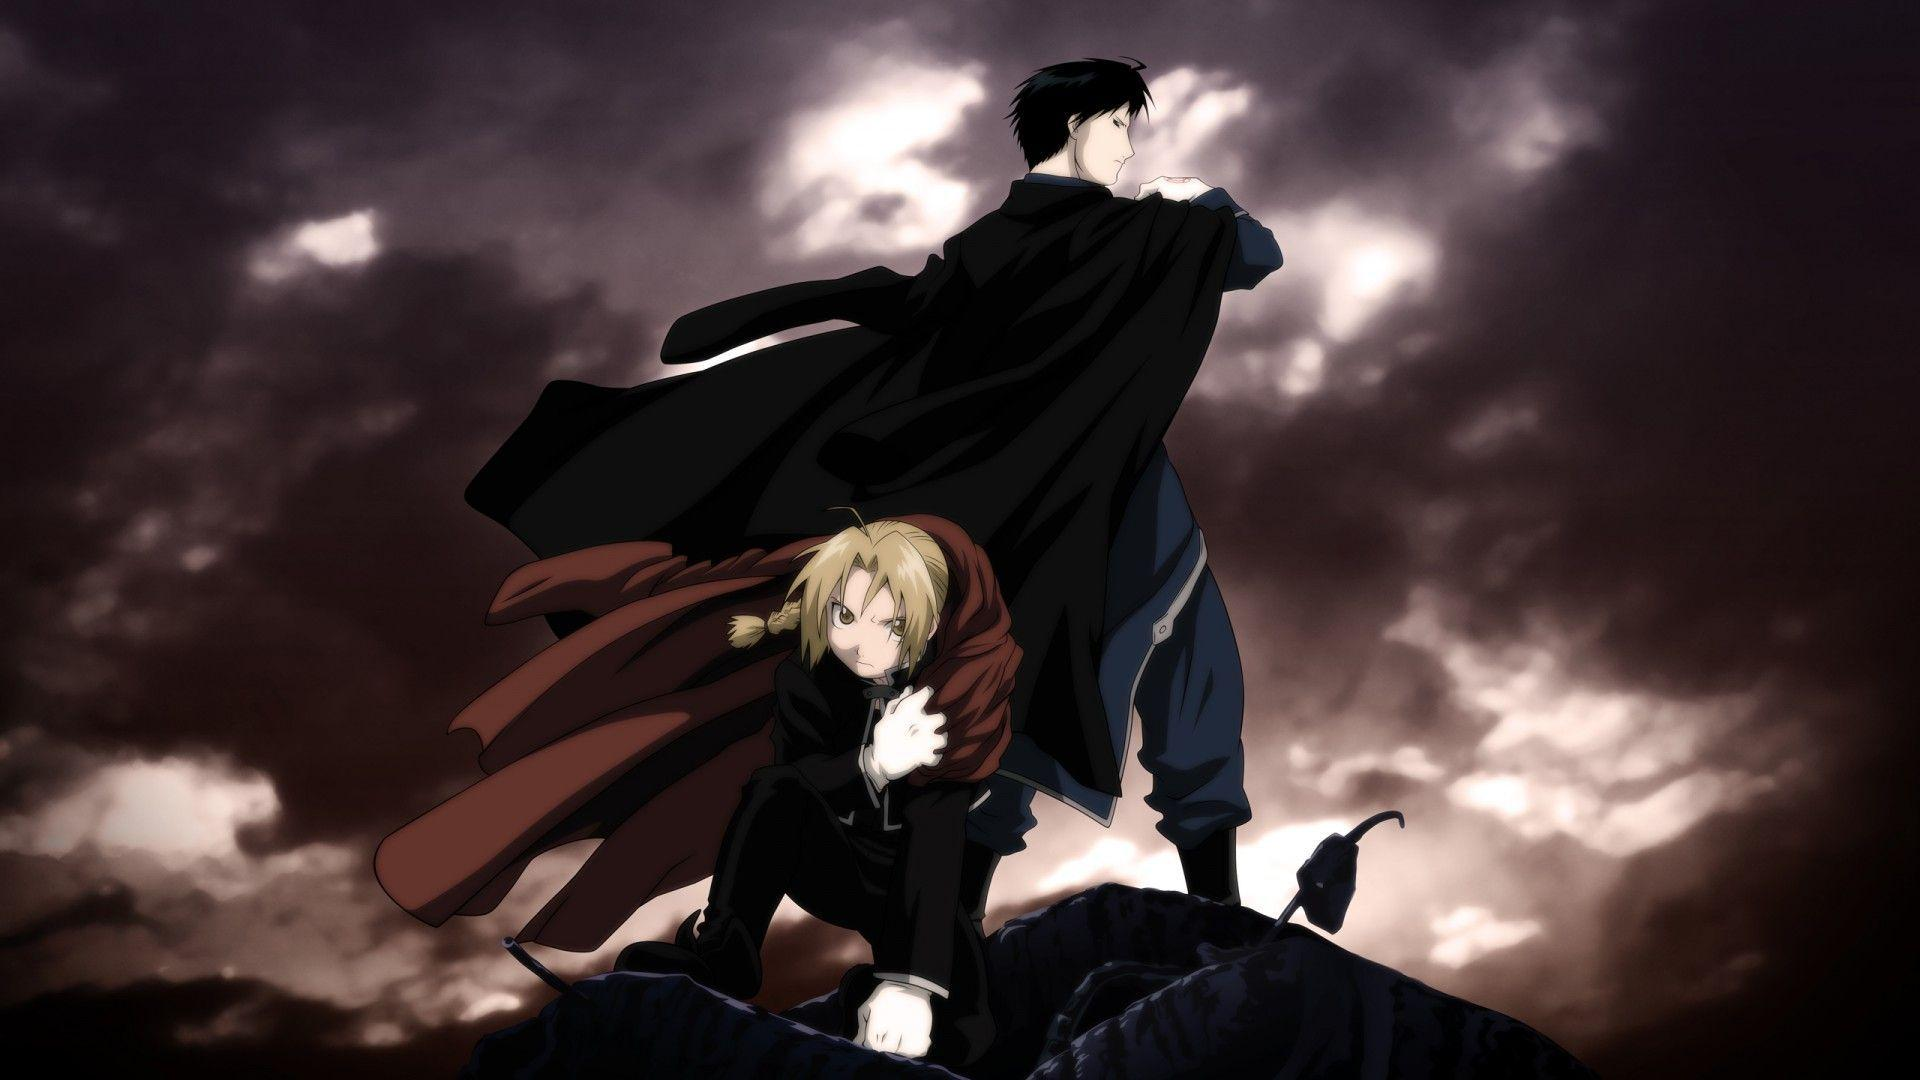 fullmetal alchemist brotherhood wallpapers wallpaper cave